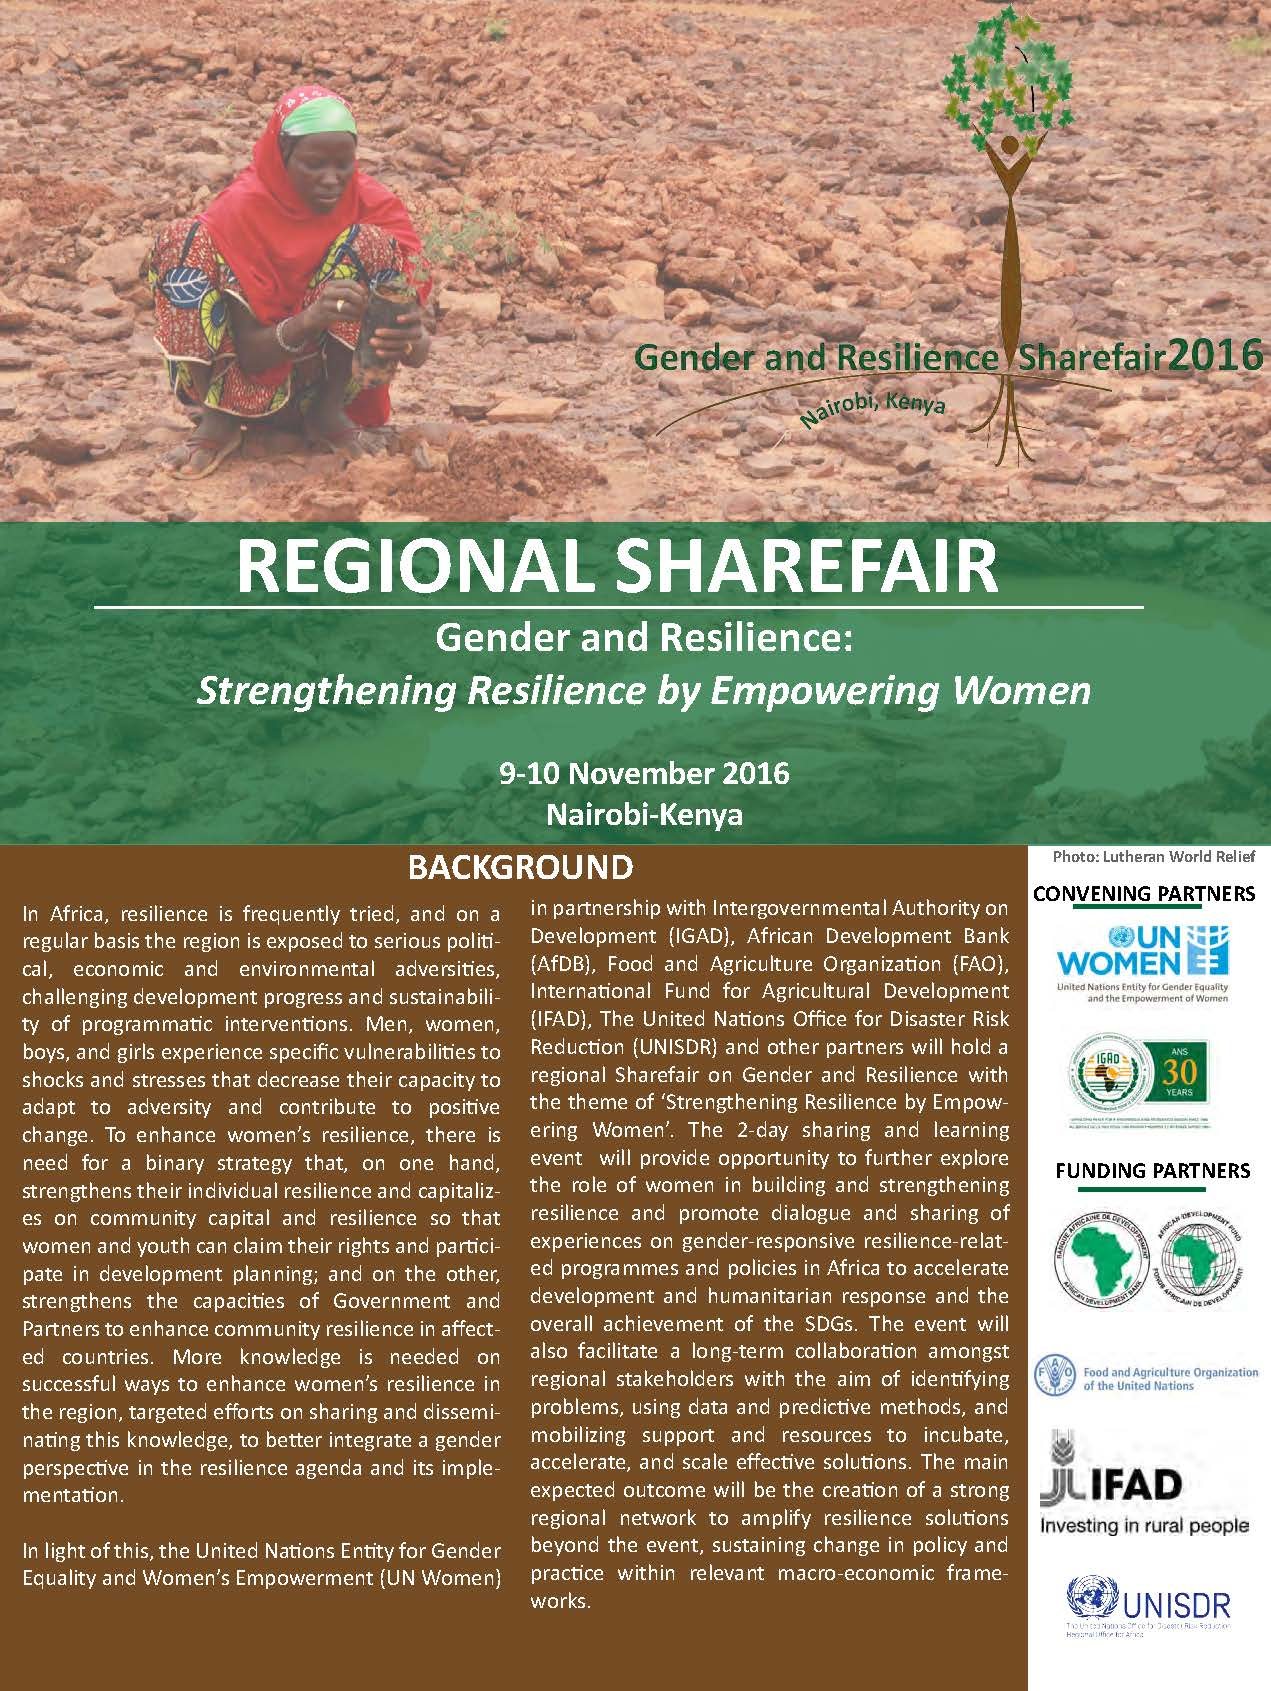 2016 Regional ShareFair on Gender and Resilience